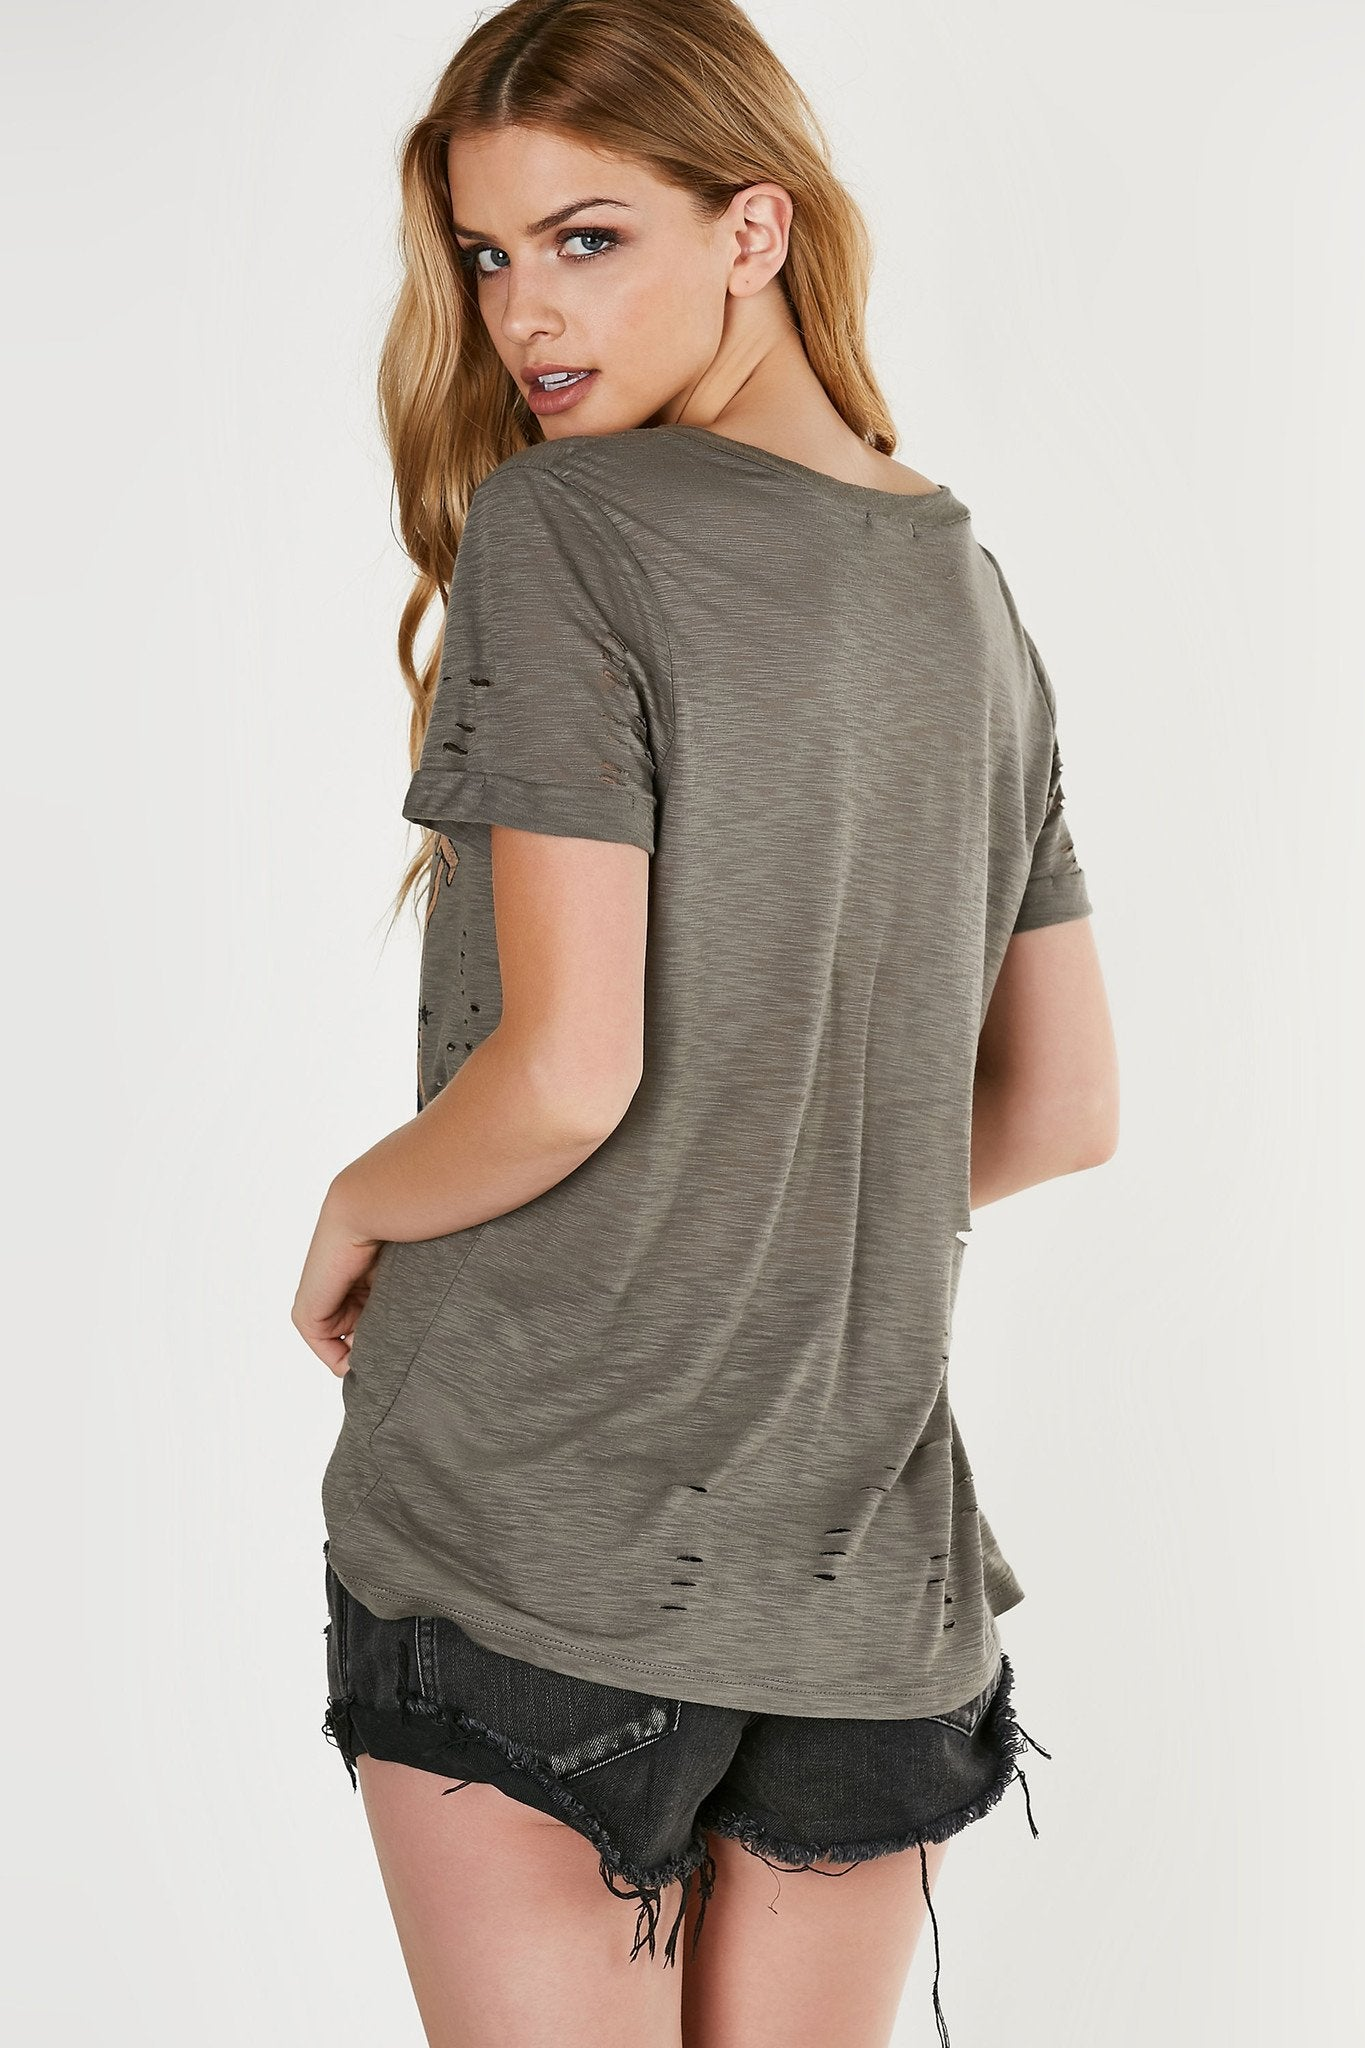 V-neck oversized T-shirt with distressing throughout. Bold graphic in front with longline hem.